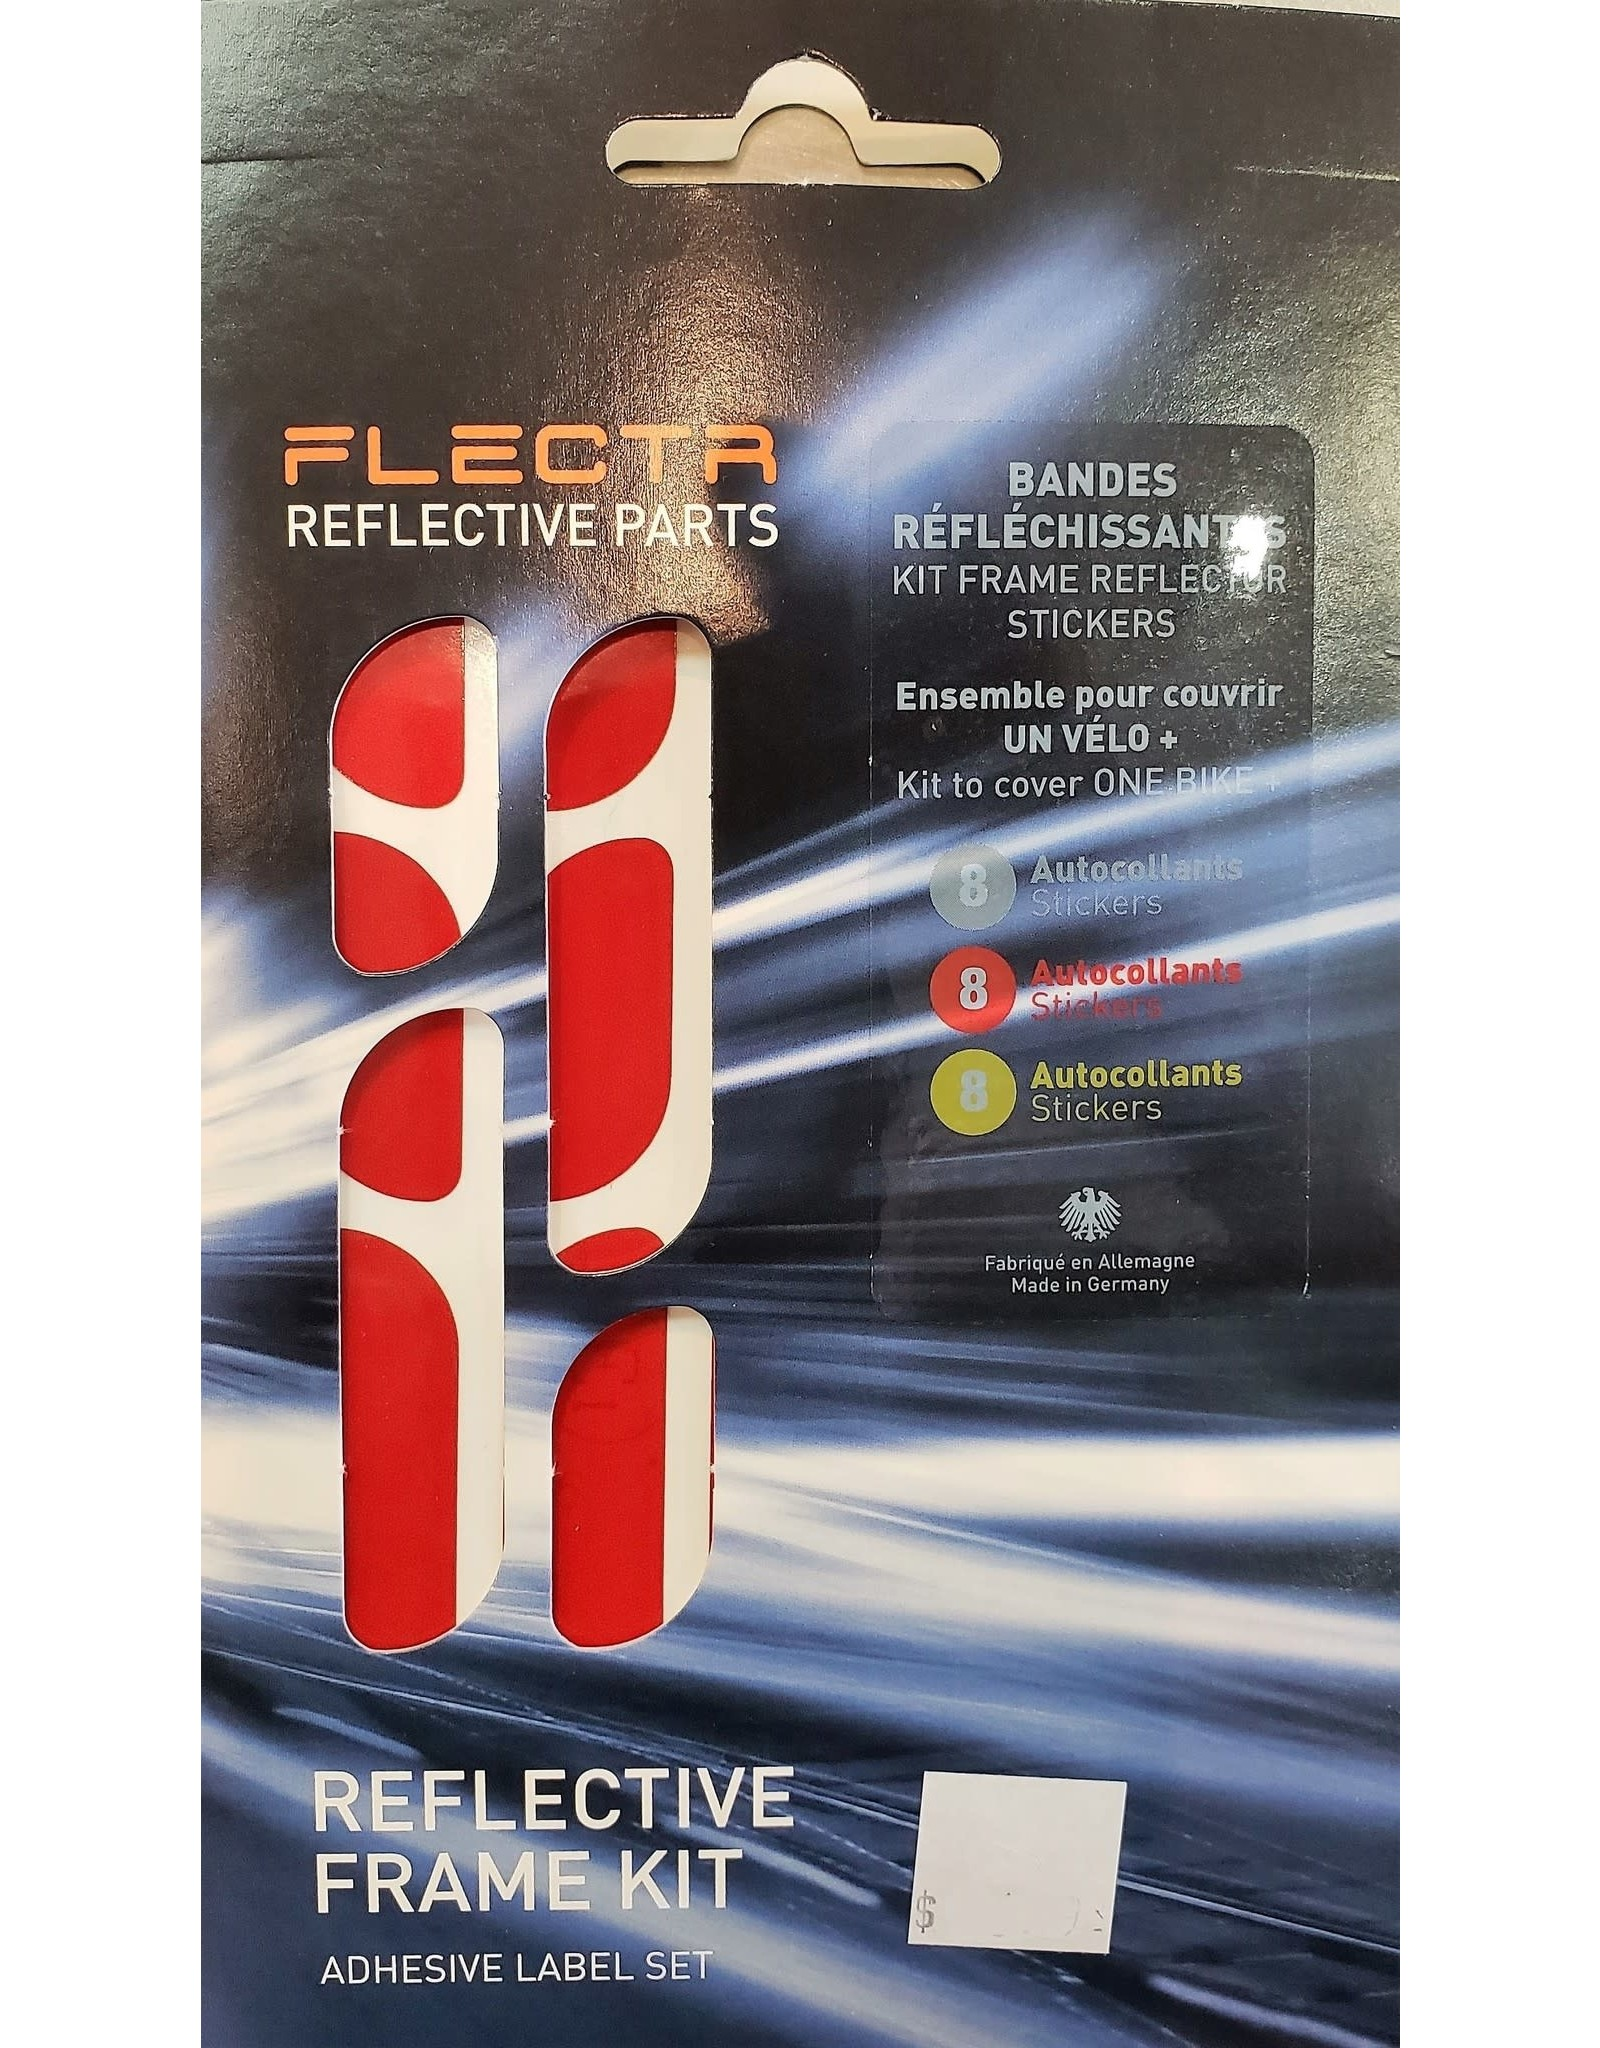 Flectr Reflector kit for frame (Multicolor)